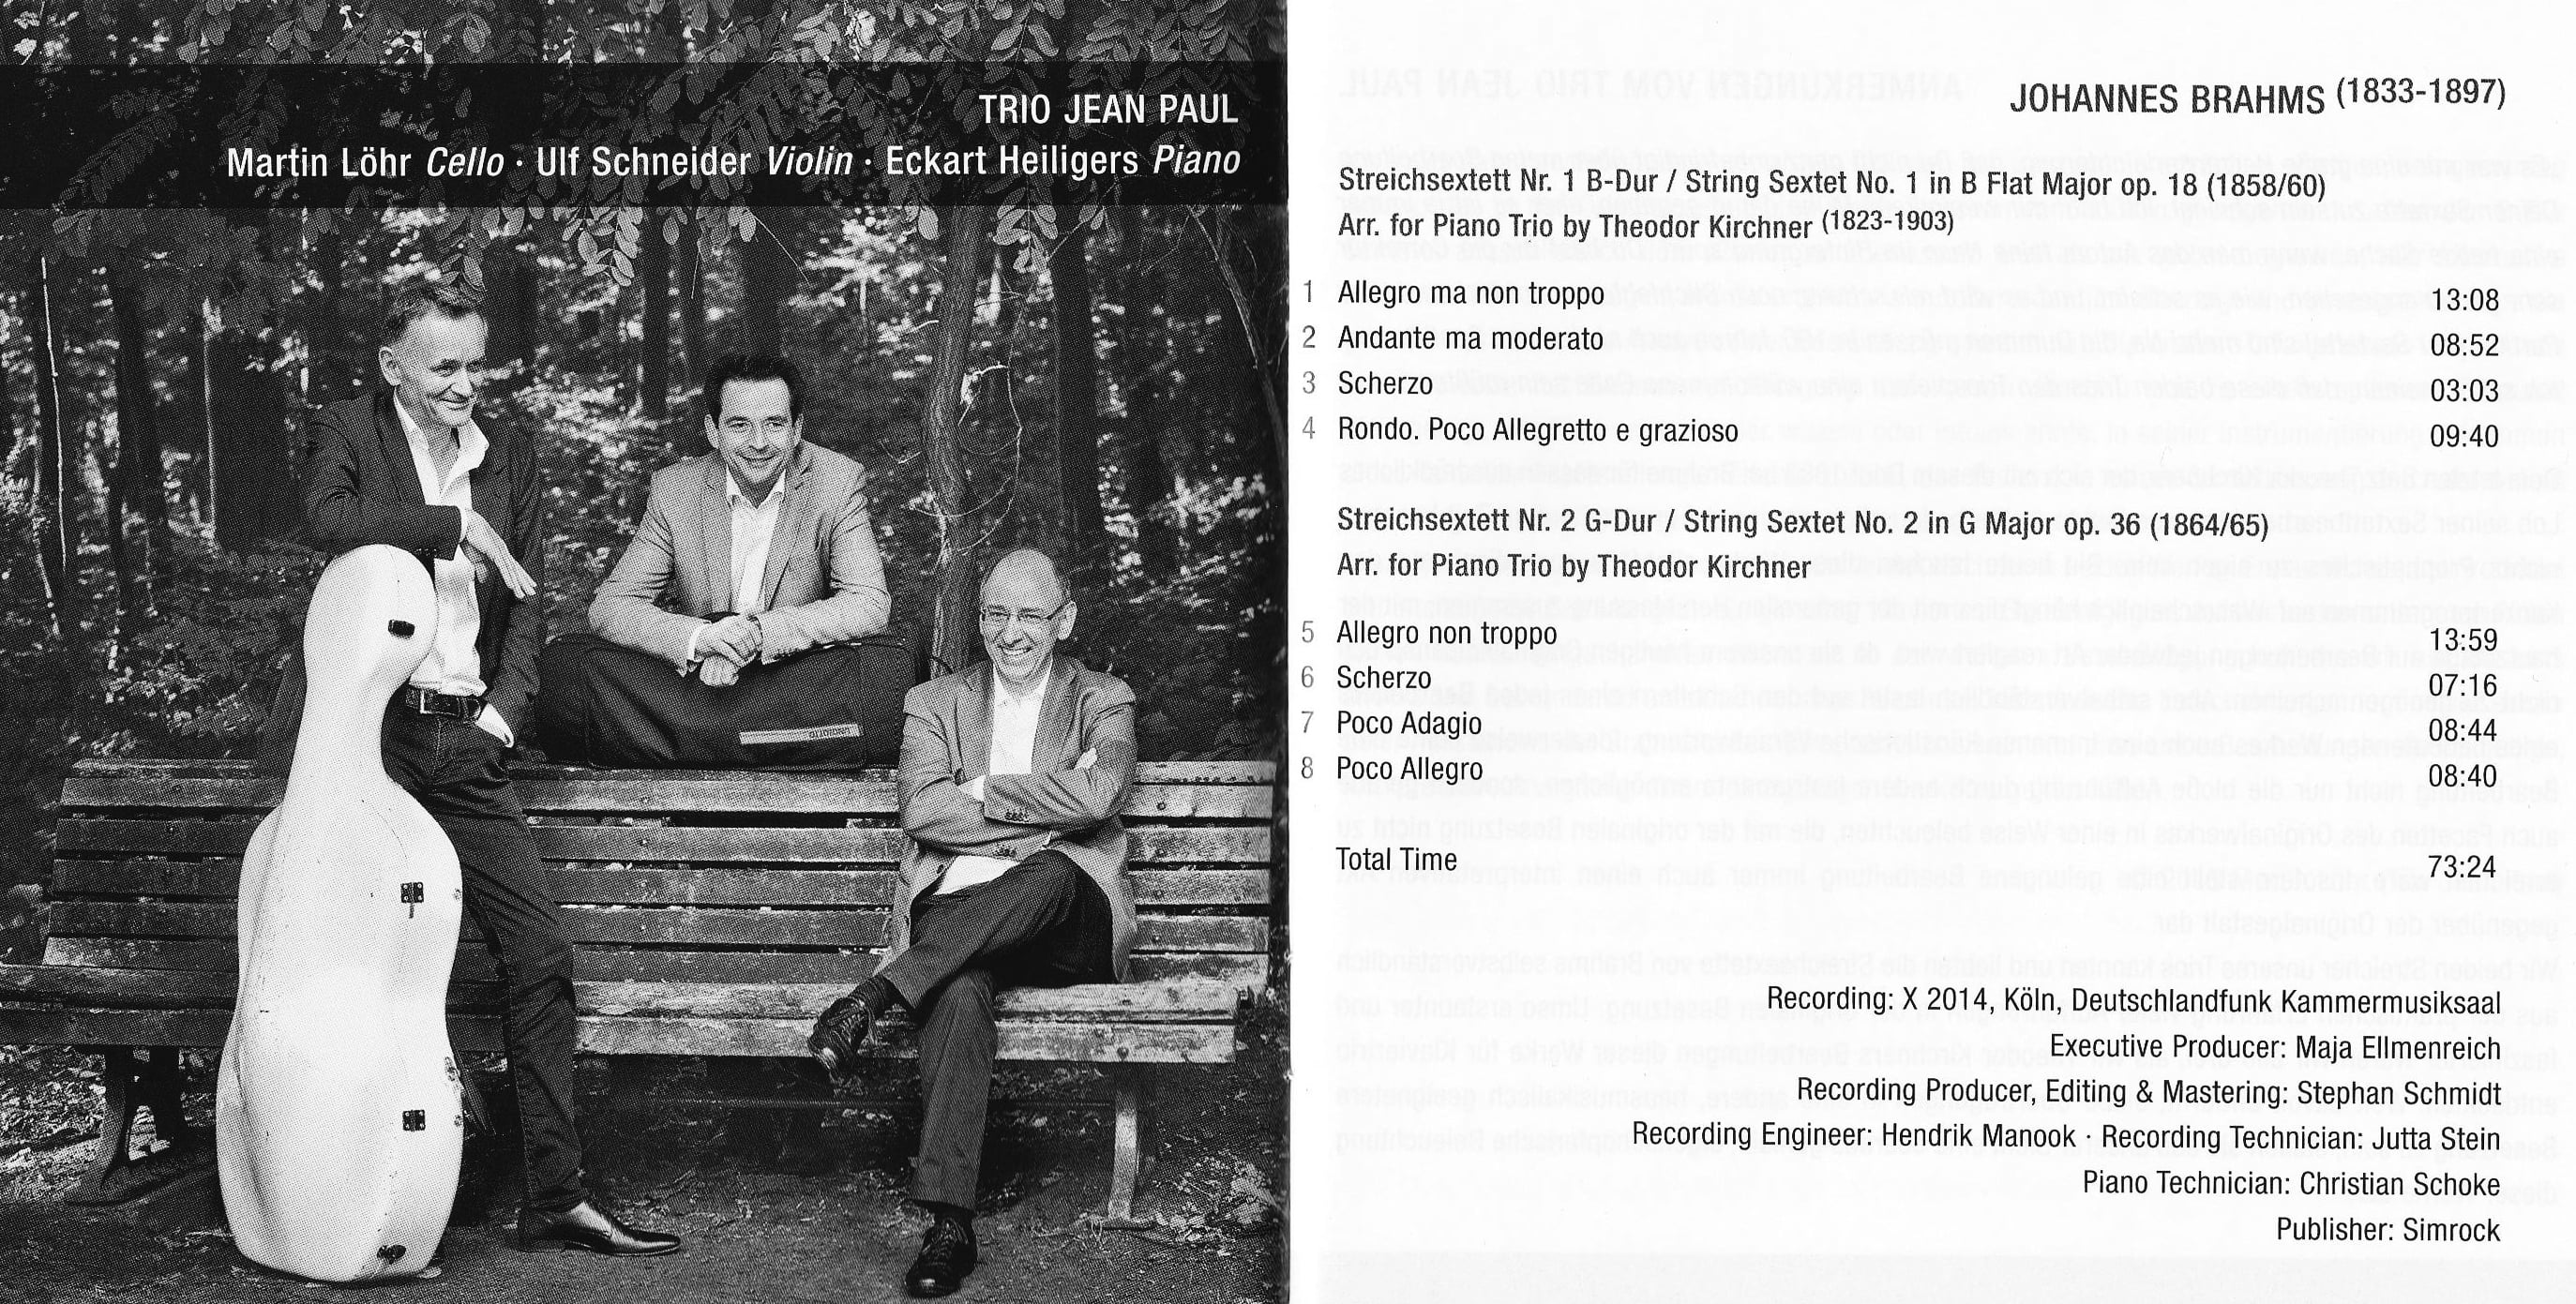 trio jean paul brahms inlay